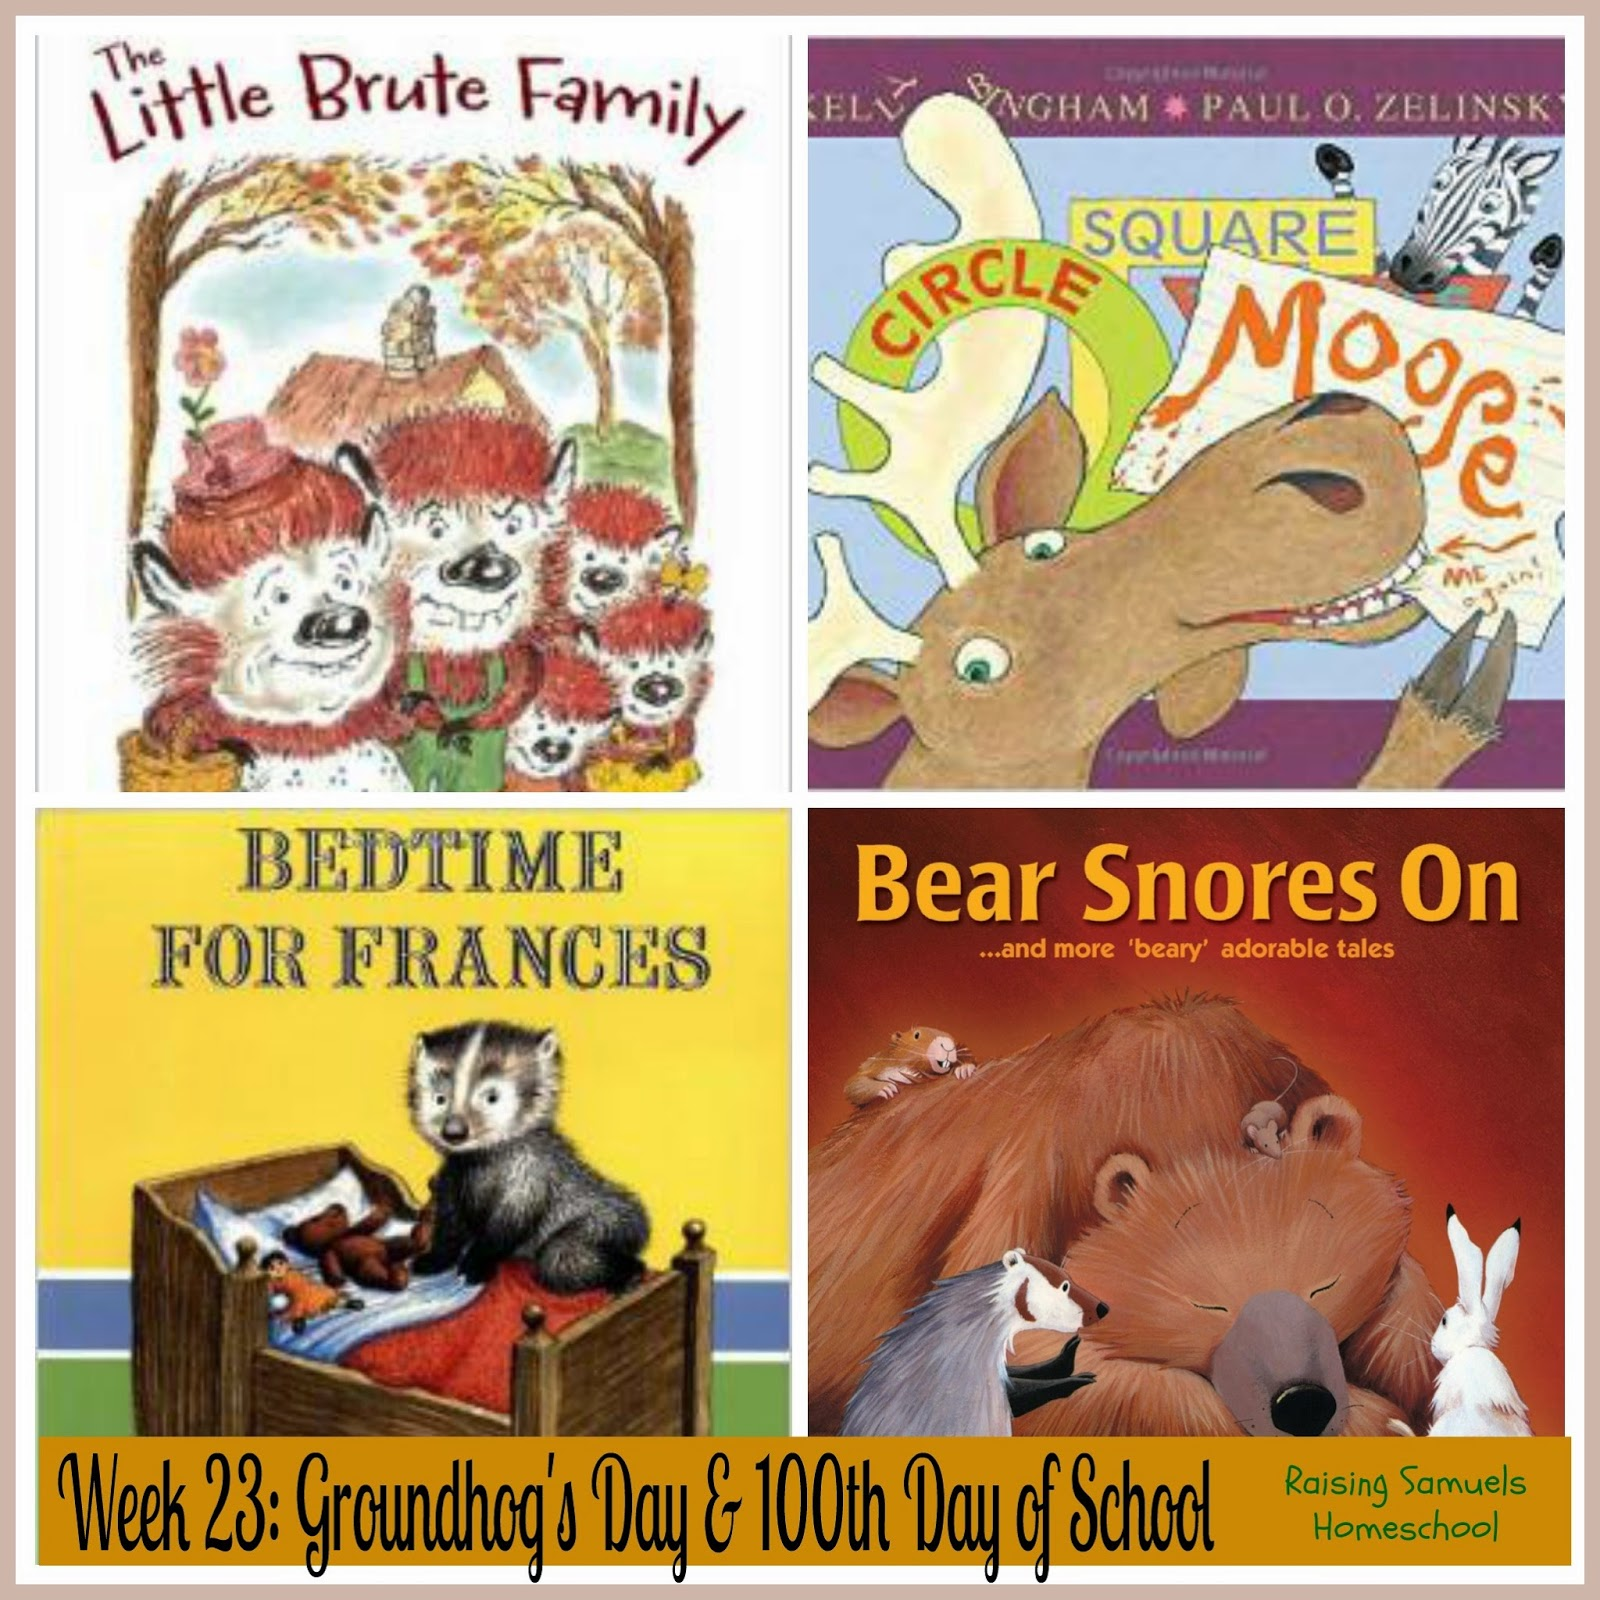 Groundhog's Day and 100th Day of School